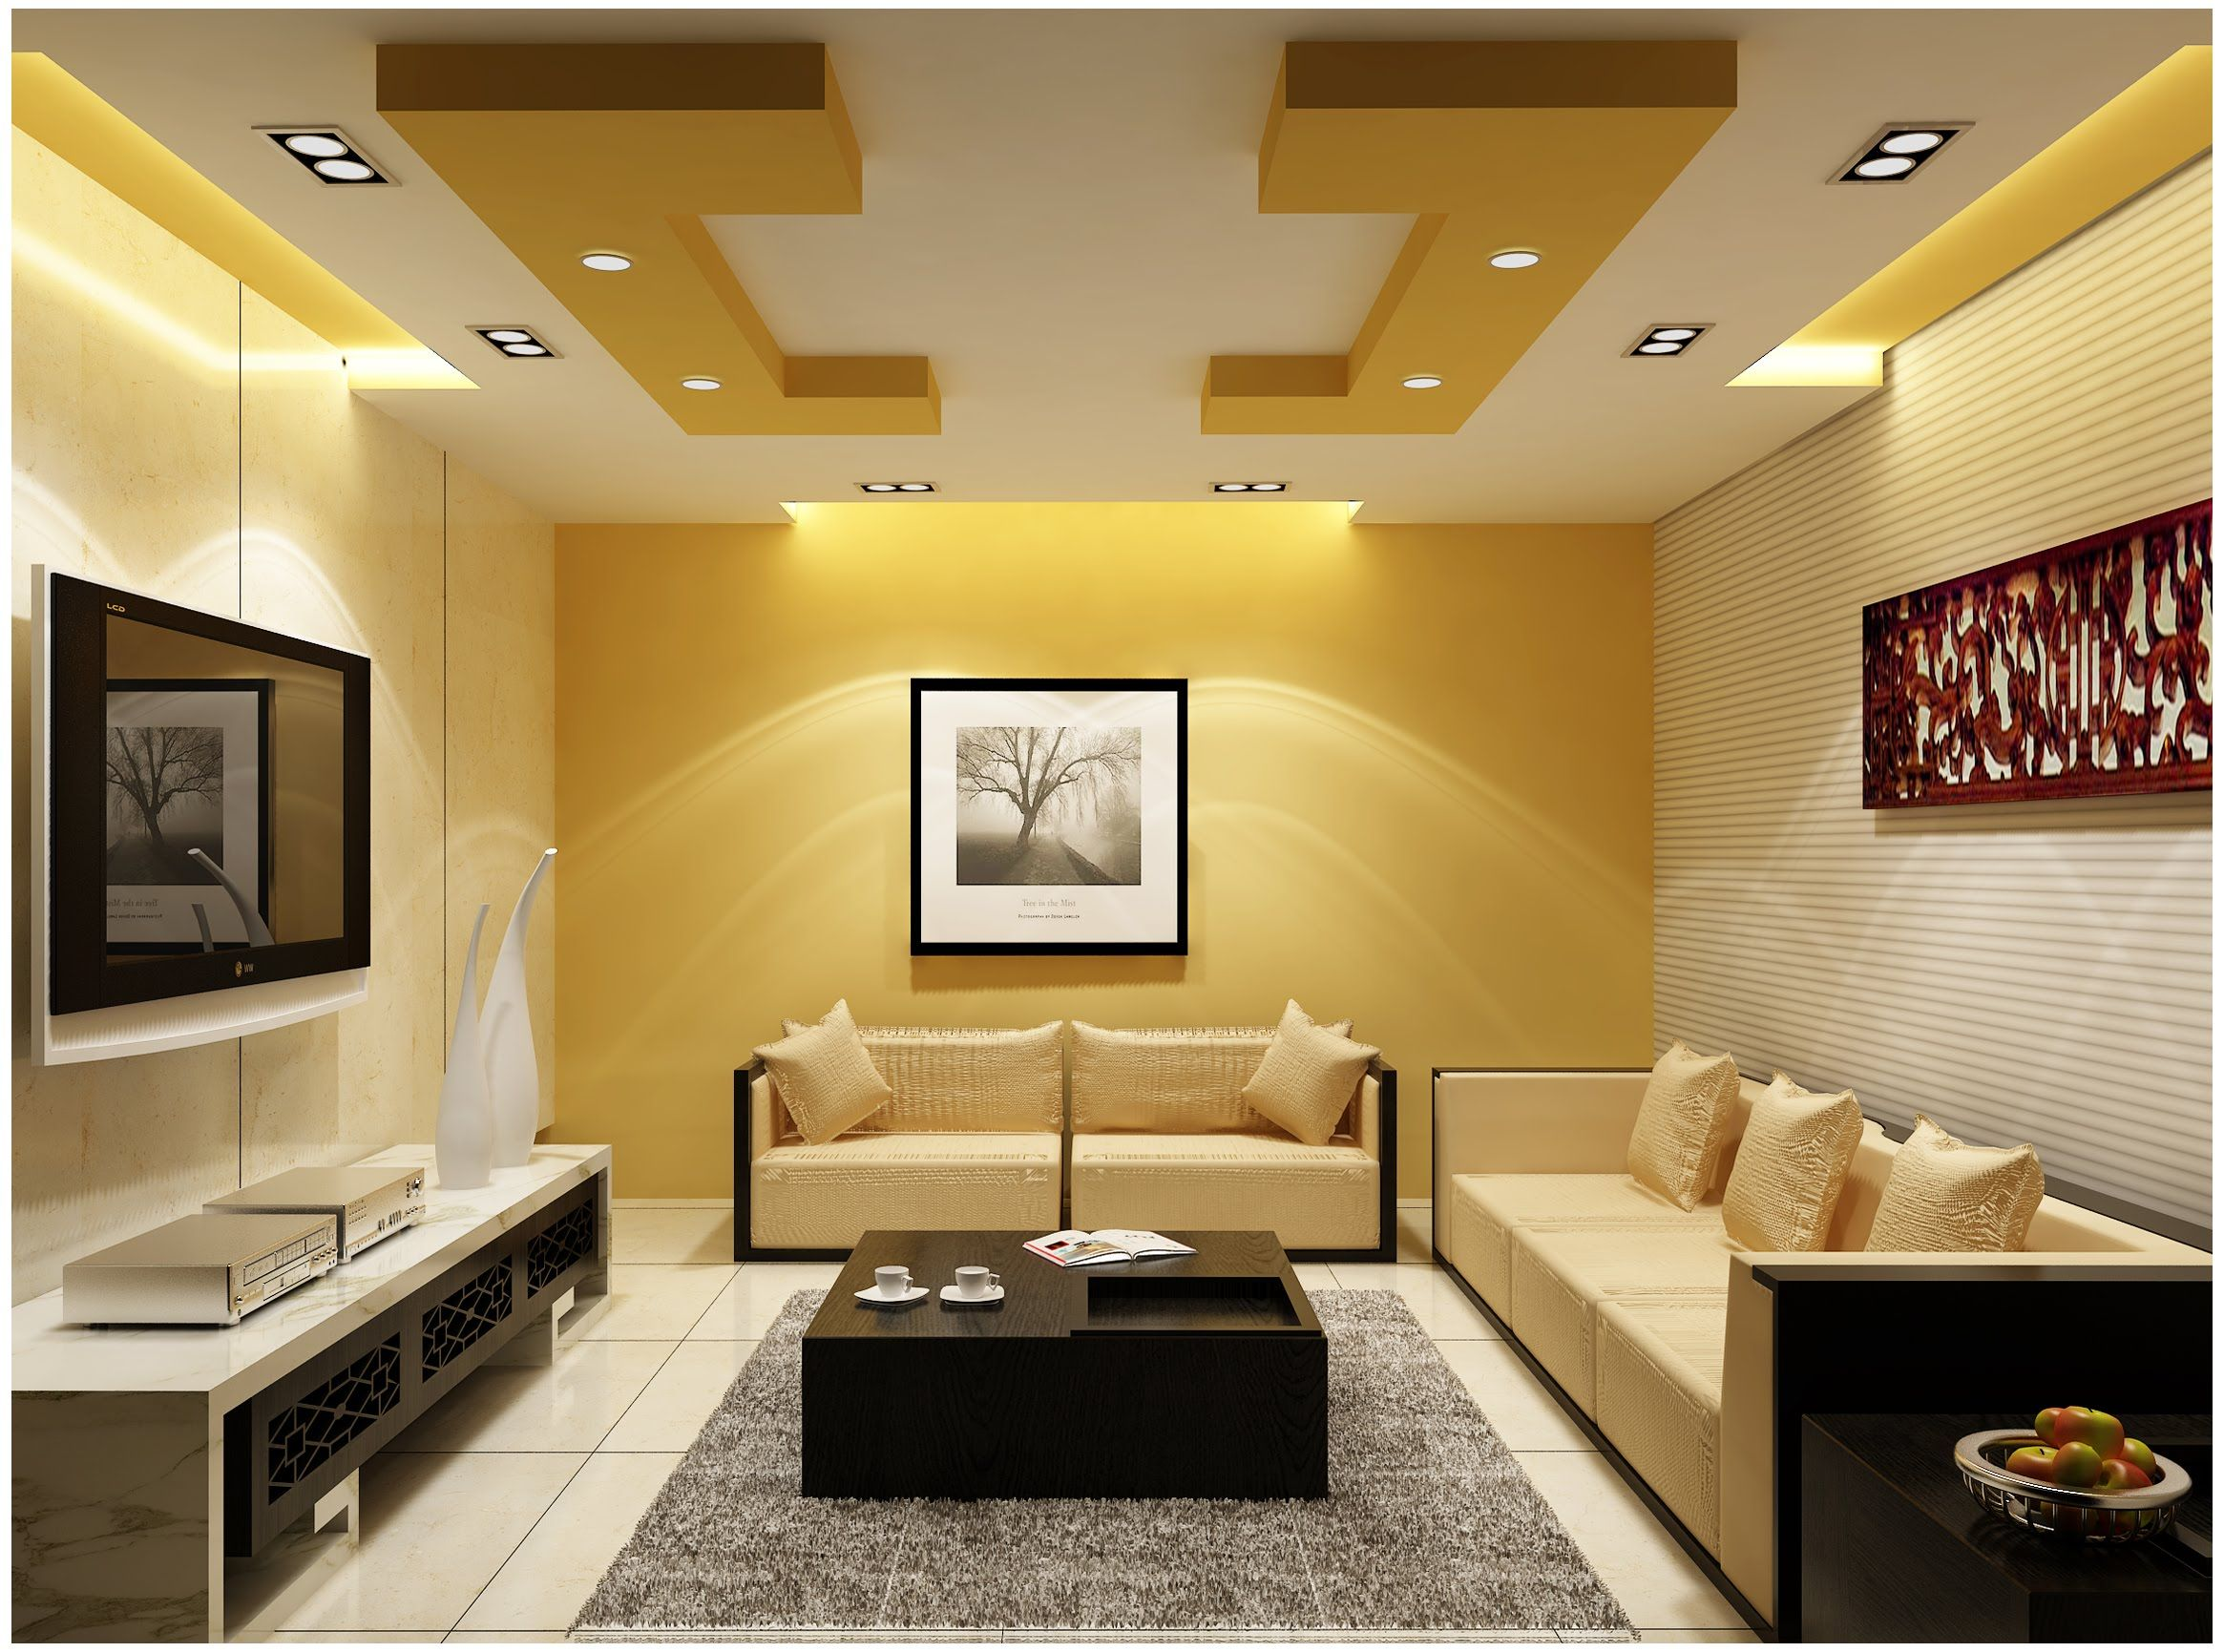 Ceiling Designs for Your Living Room | False ceiling design ...